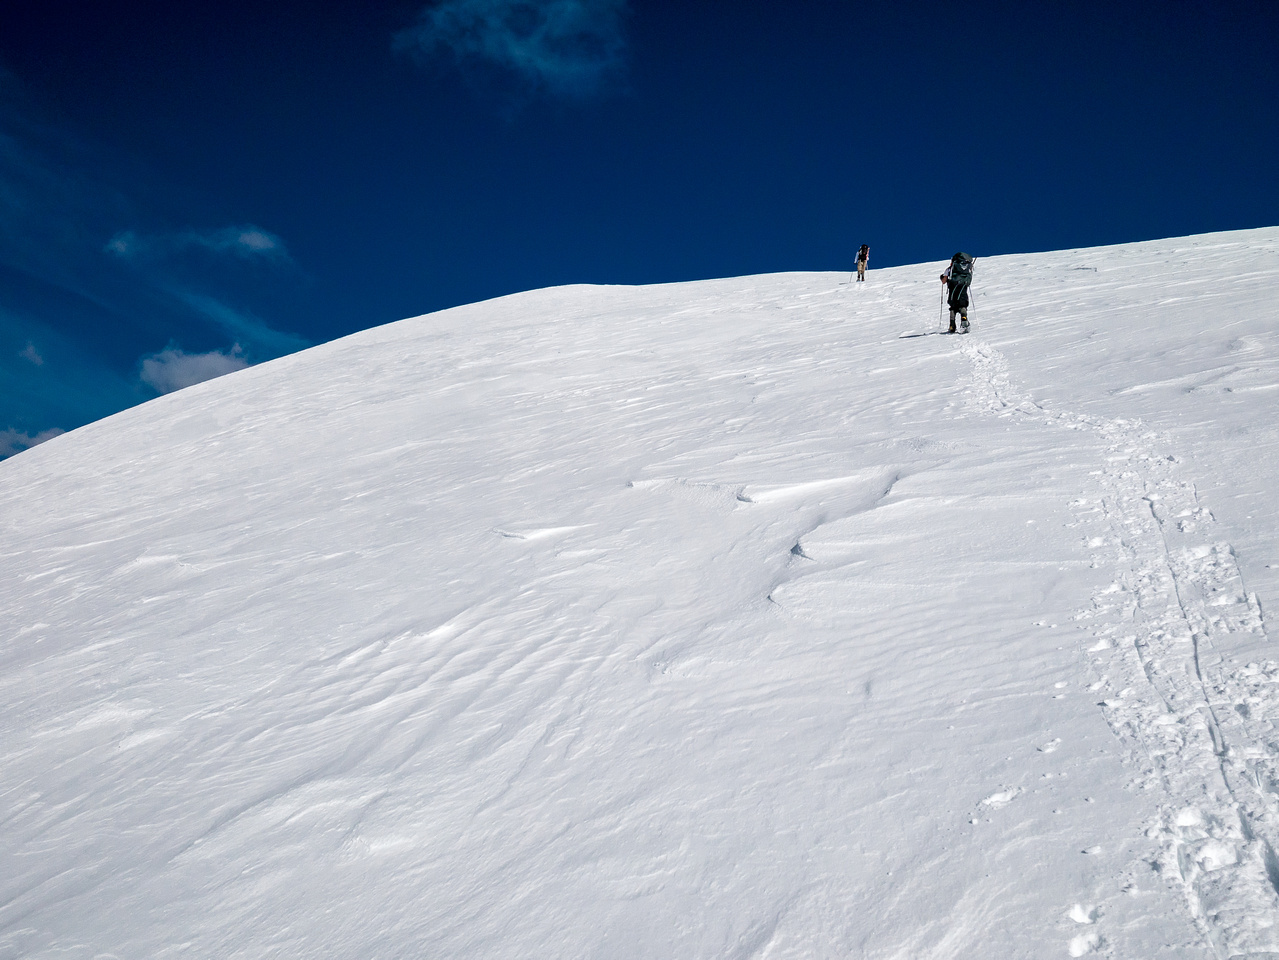 Back on reasonable terrain - feels flat after the face! Almost at the summit - watch out for cornices on the right.